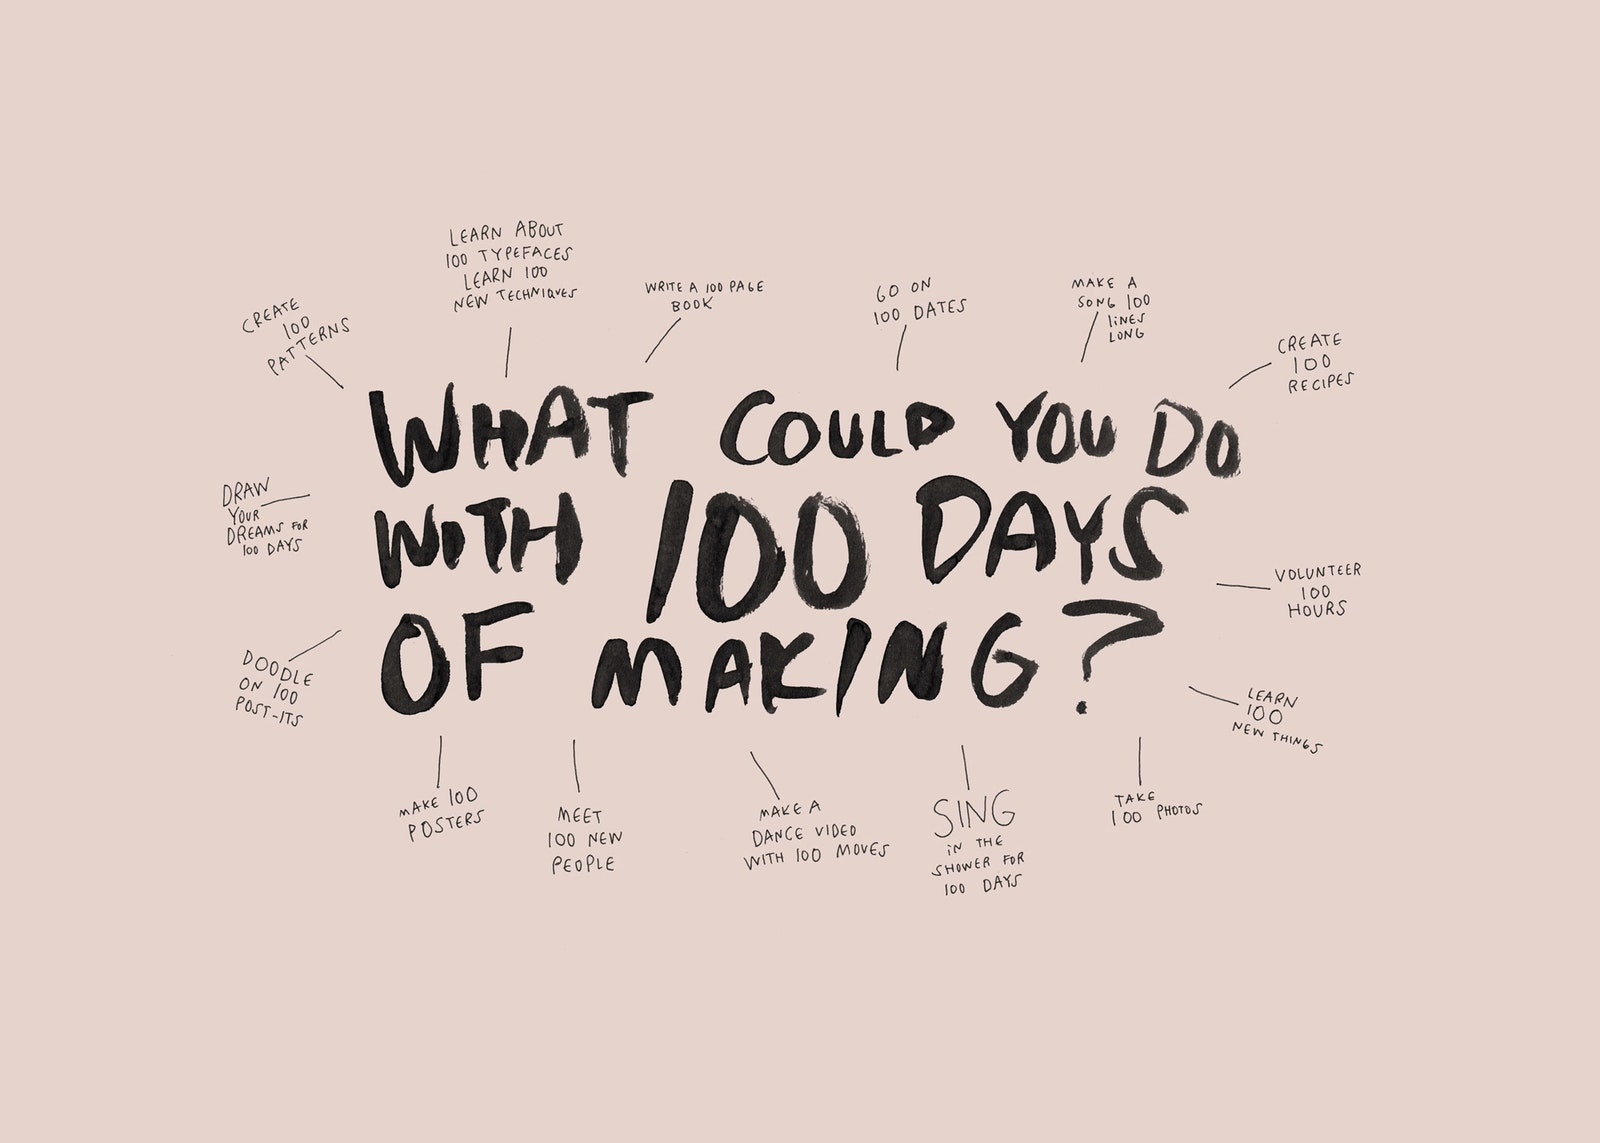 What could you do with 100 days of making?